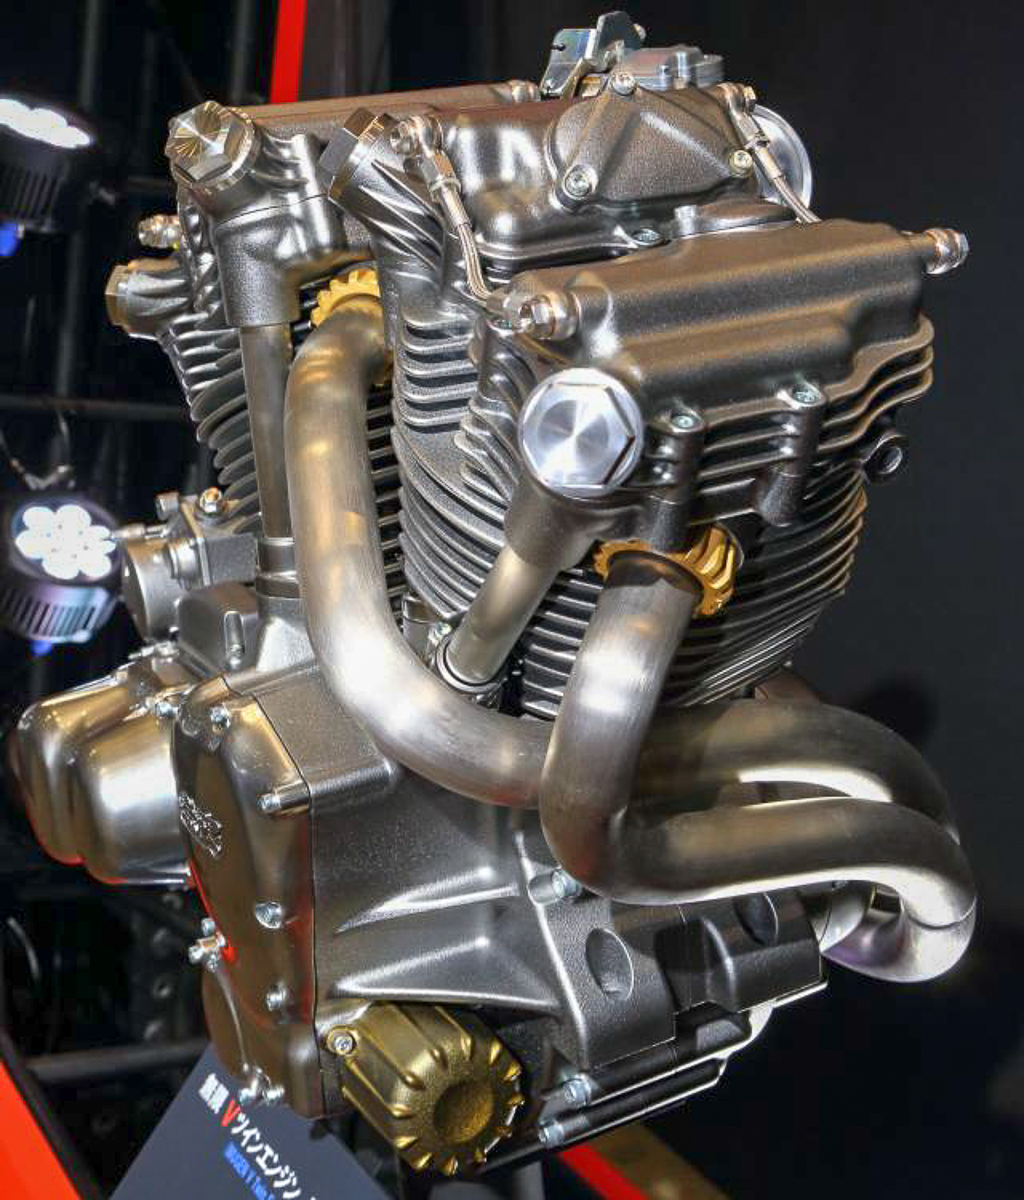 V Twin Quad Engine: Mugen Introduces 1,400cc V-twin Motorcycle Engine